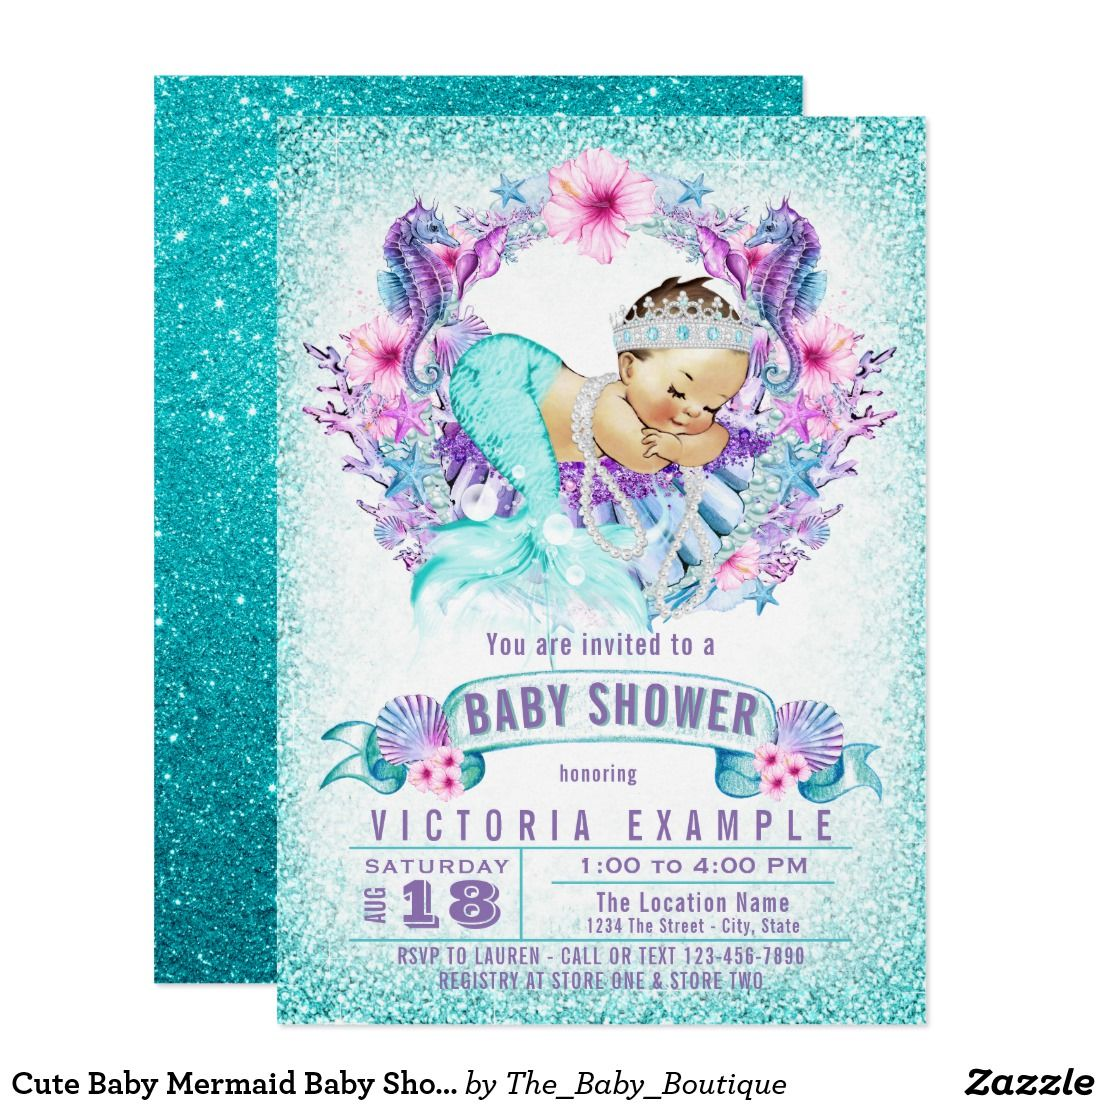 Cute Baby Mermaid Baby Shower Invitation | Mermaid baby showers and ...